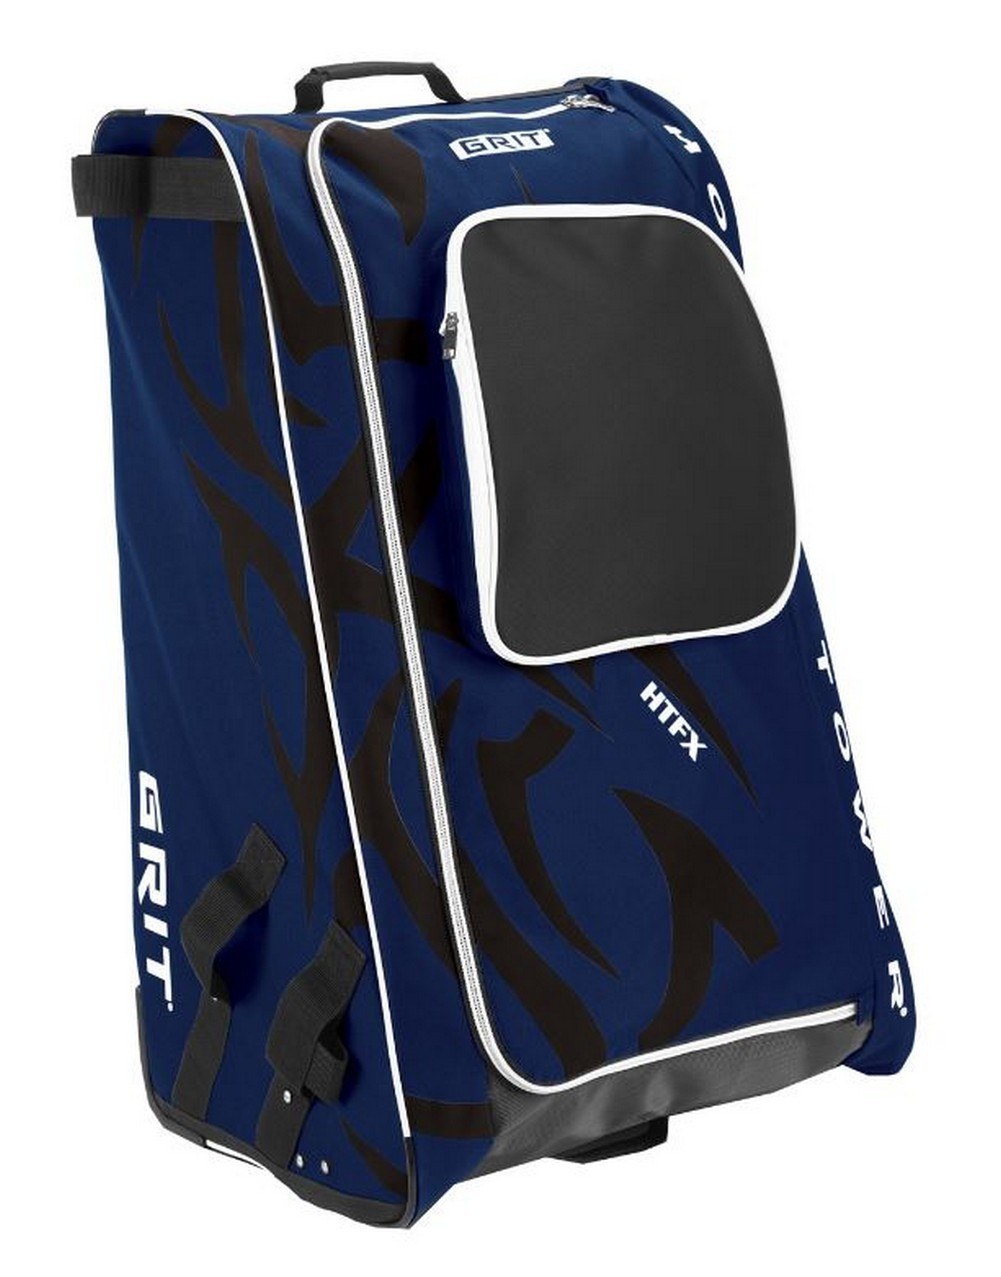 "Grit Inc HTFX Hockey Tower 36"" Wheeled Equipment Bag Navy HTFX036-NY (Navy) by Grit Inc."